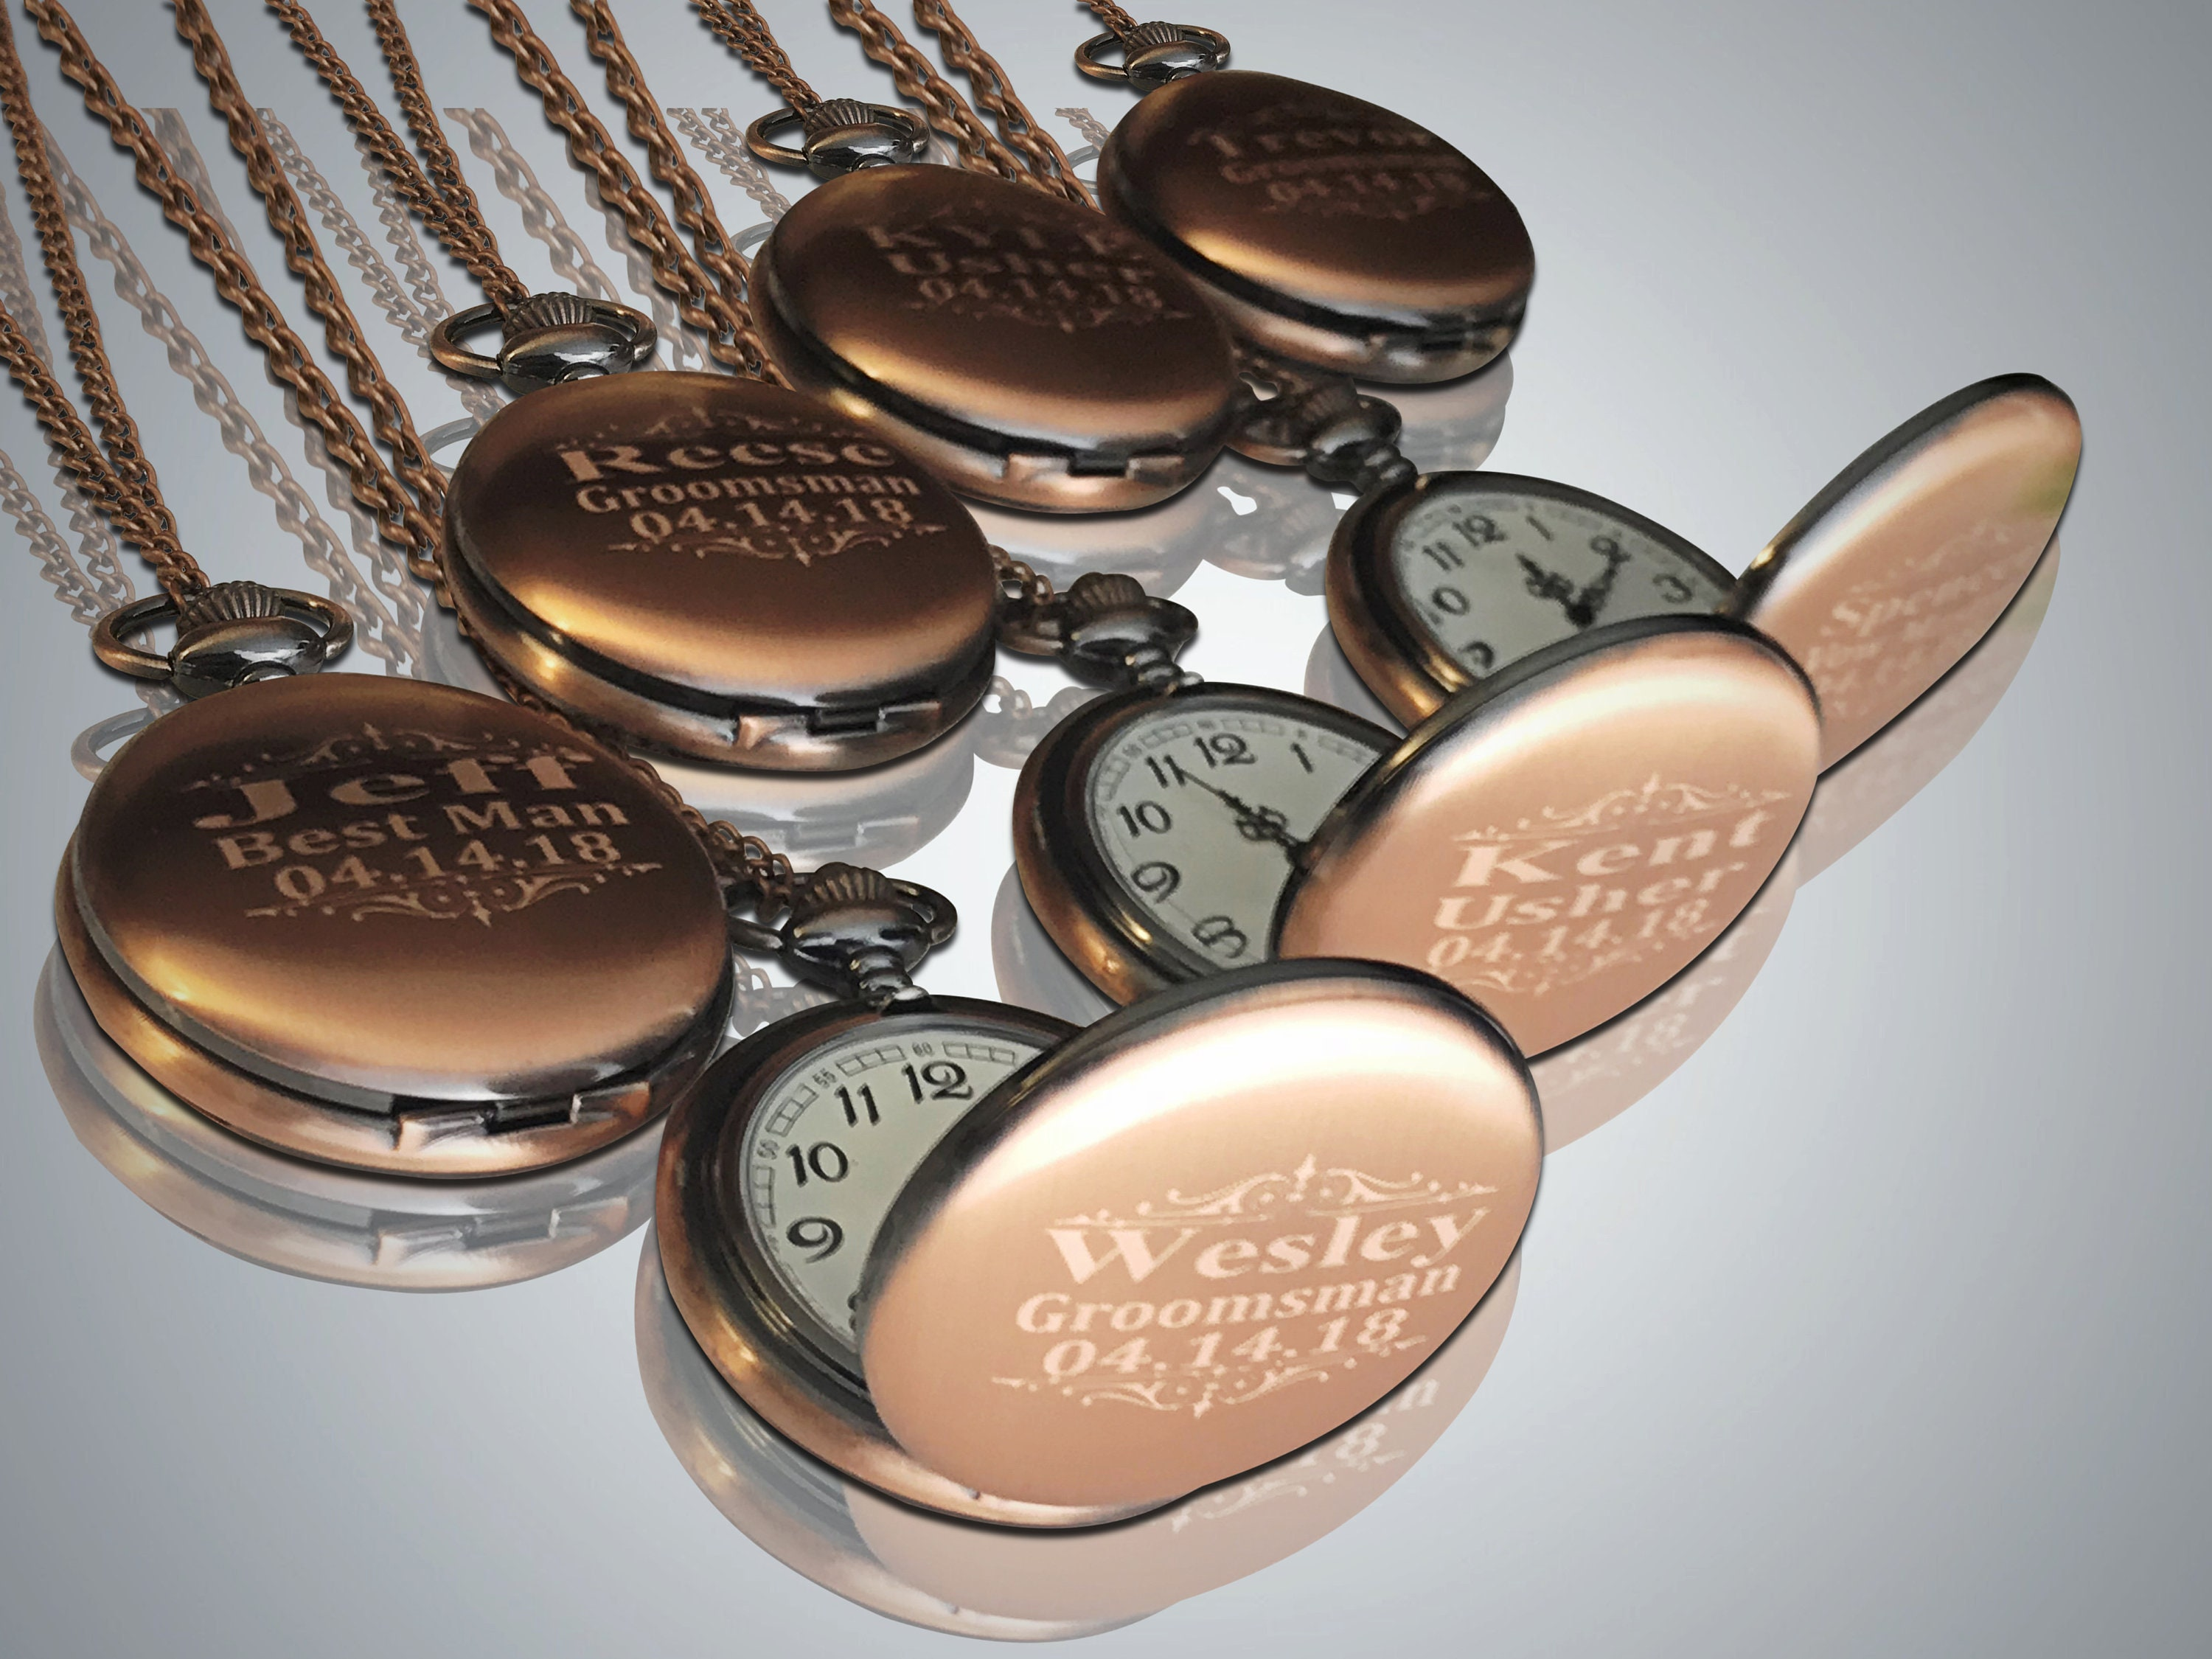 91e59e4a5 7 Rose Gold Pocket watches, Groomsmen gift, Best Man Engraved gift, Rose  Gold personalized Watch in gift box & chain, Unique Wedding gift